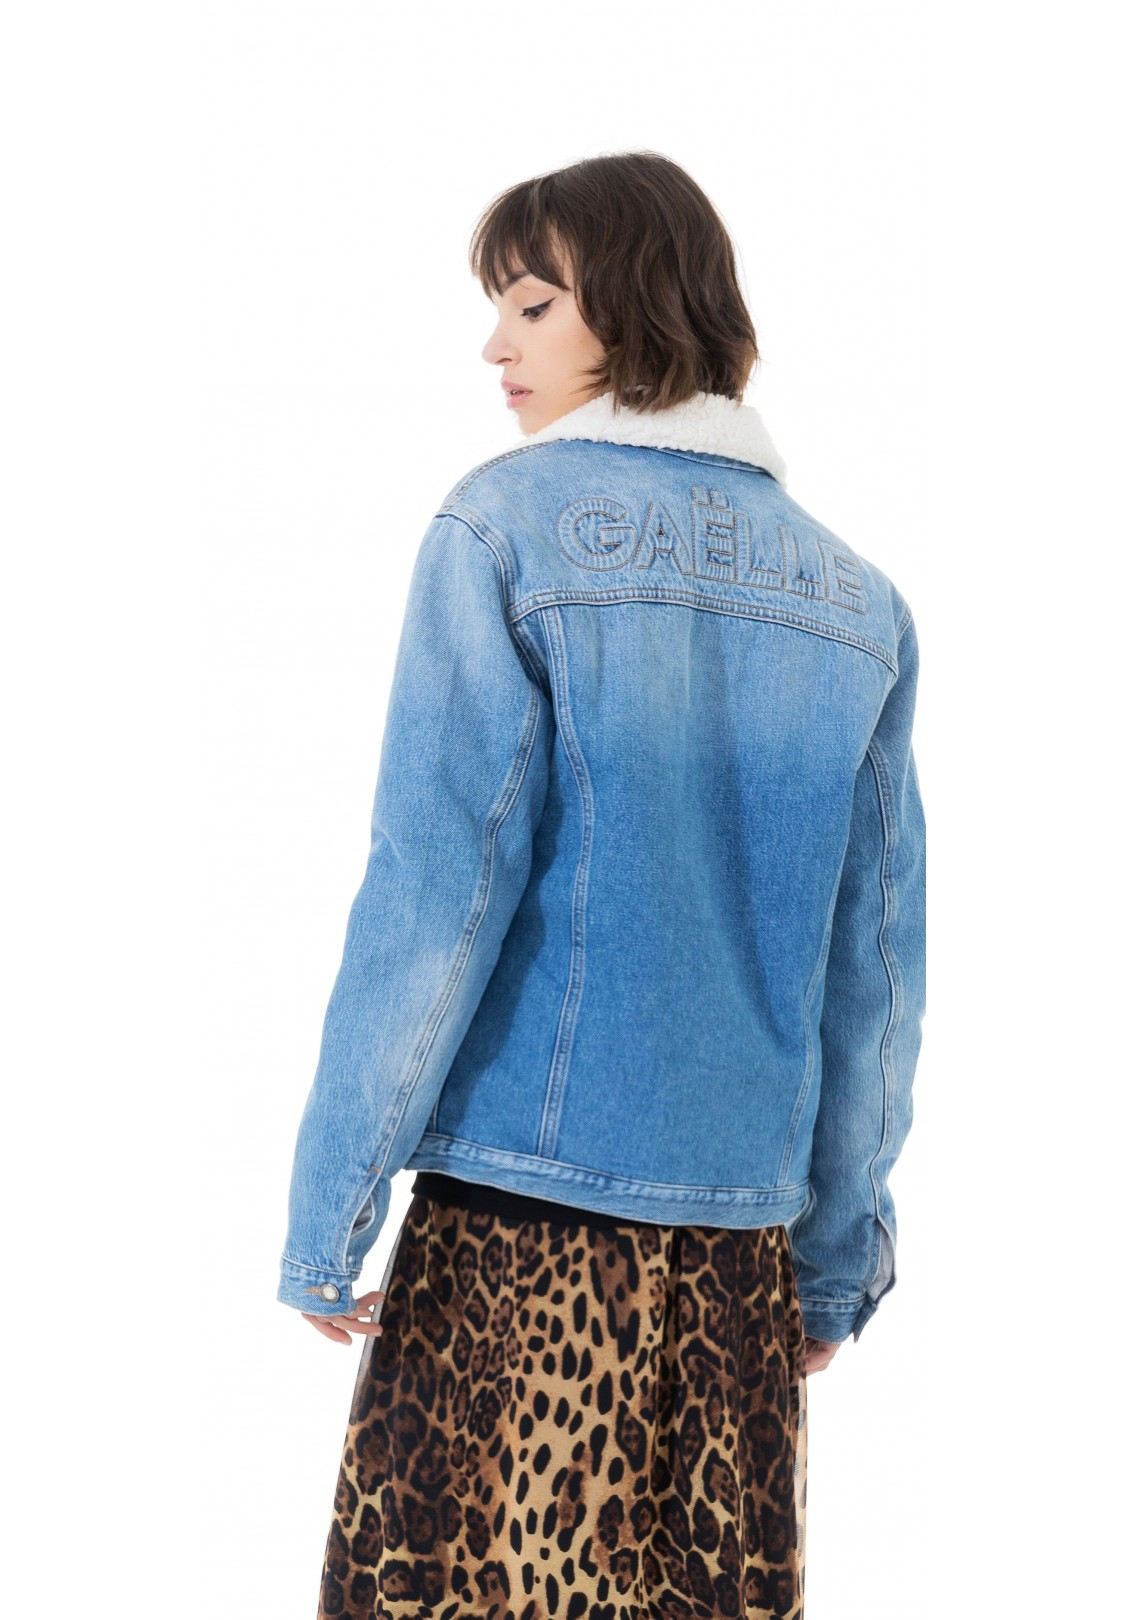 JACKET - GBD4508 - GAELLE PARIS